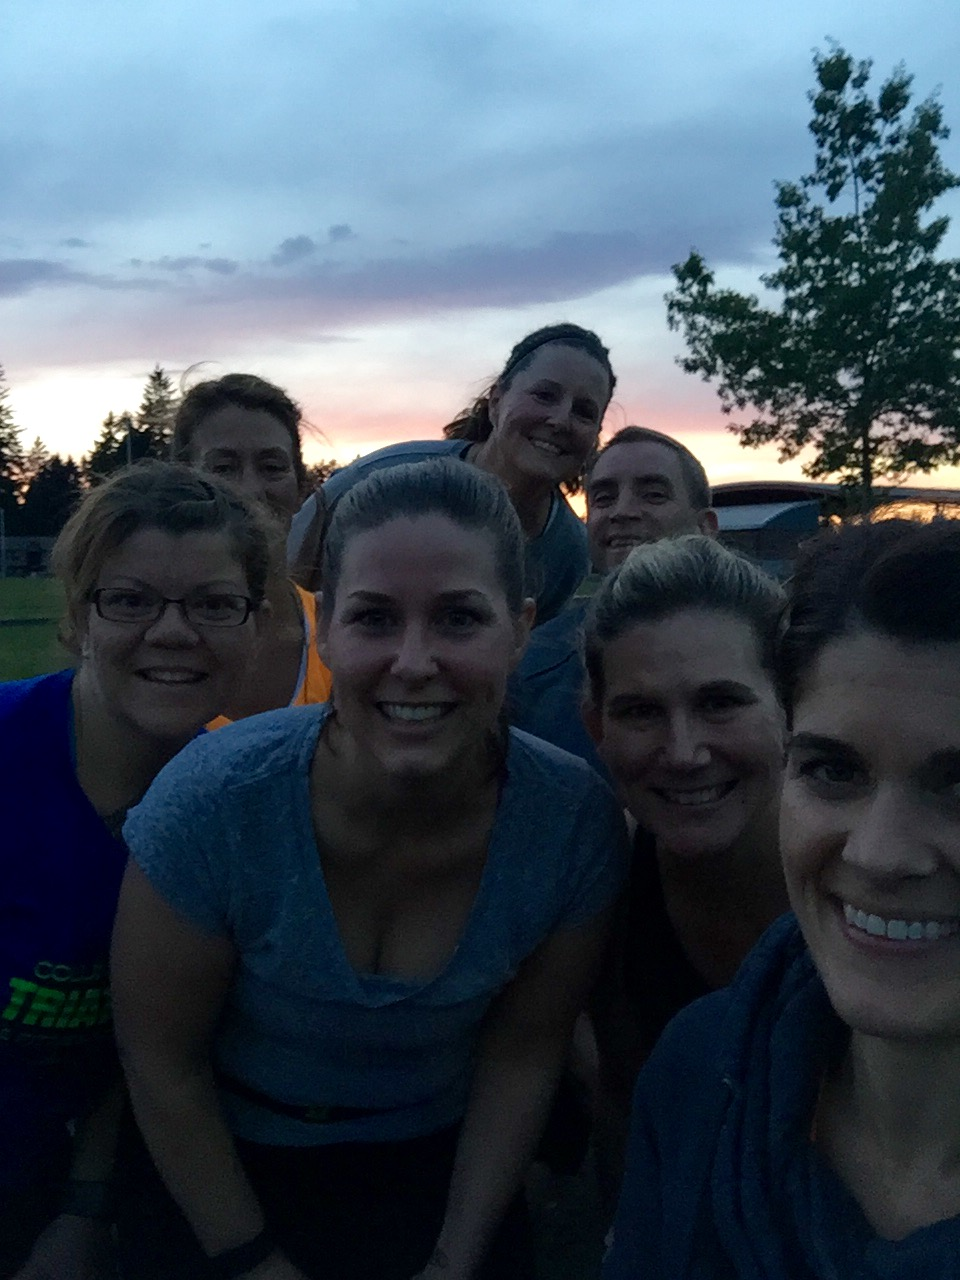 Post-workout group selfie from Cascade Middle School after killin' the 8x400m workout!